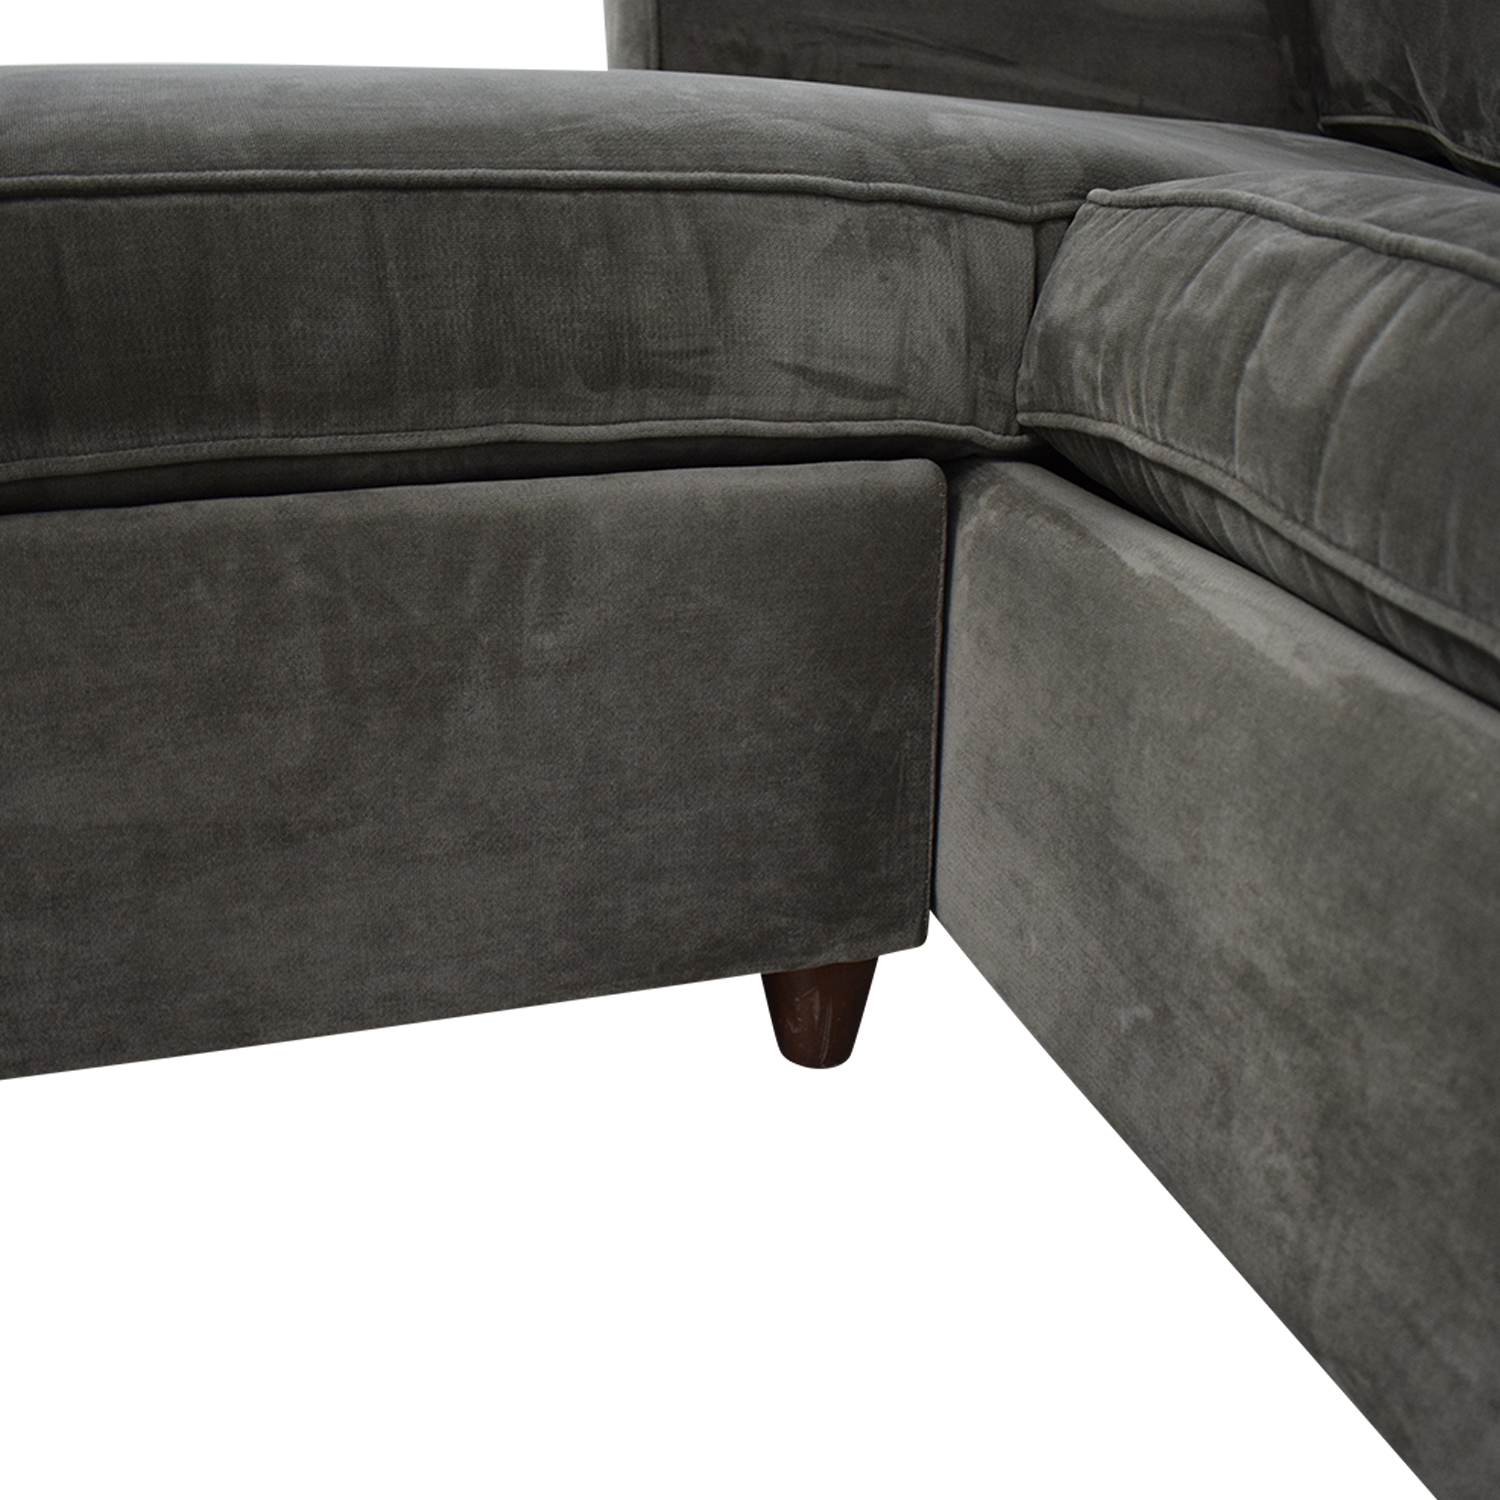 wholesale dealer 68b1a 3cbc7 77% OFF - Macy's Macy's Lidia Chaise Sectional Queen Sleeper Sofa / Sofas